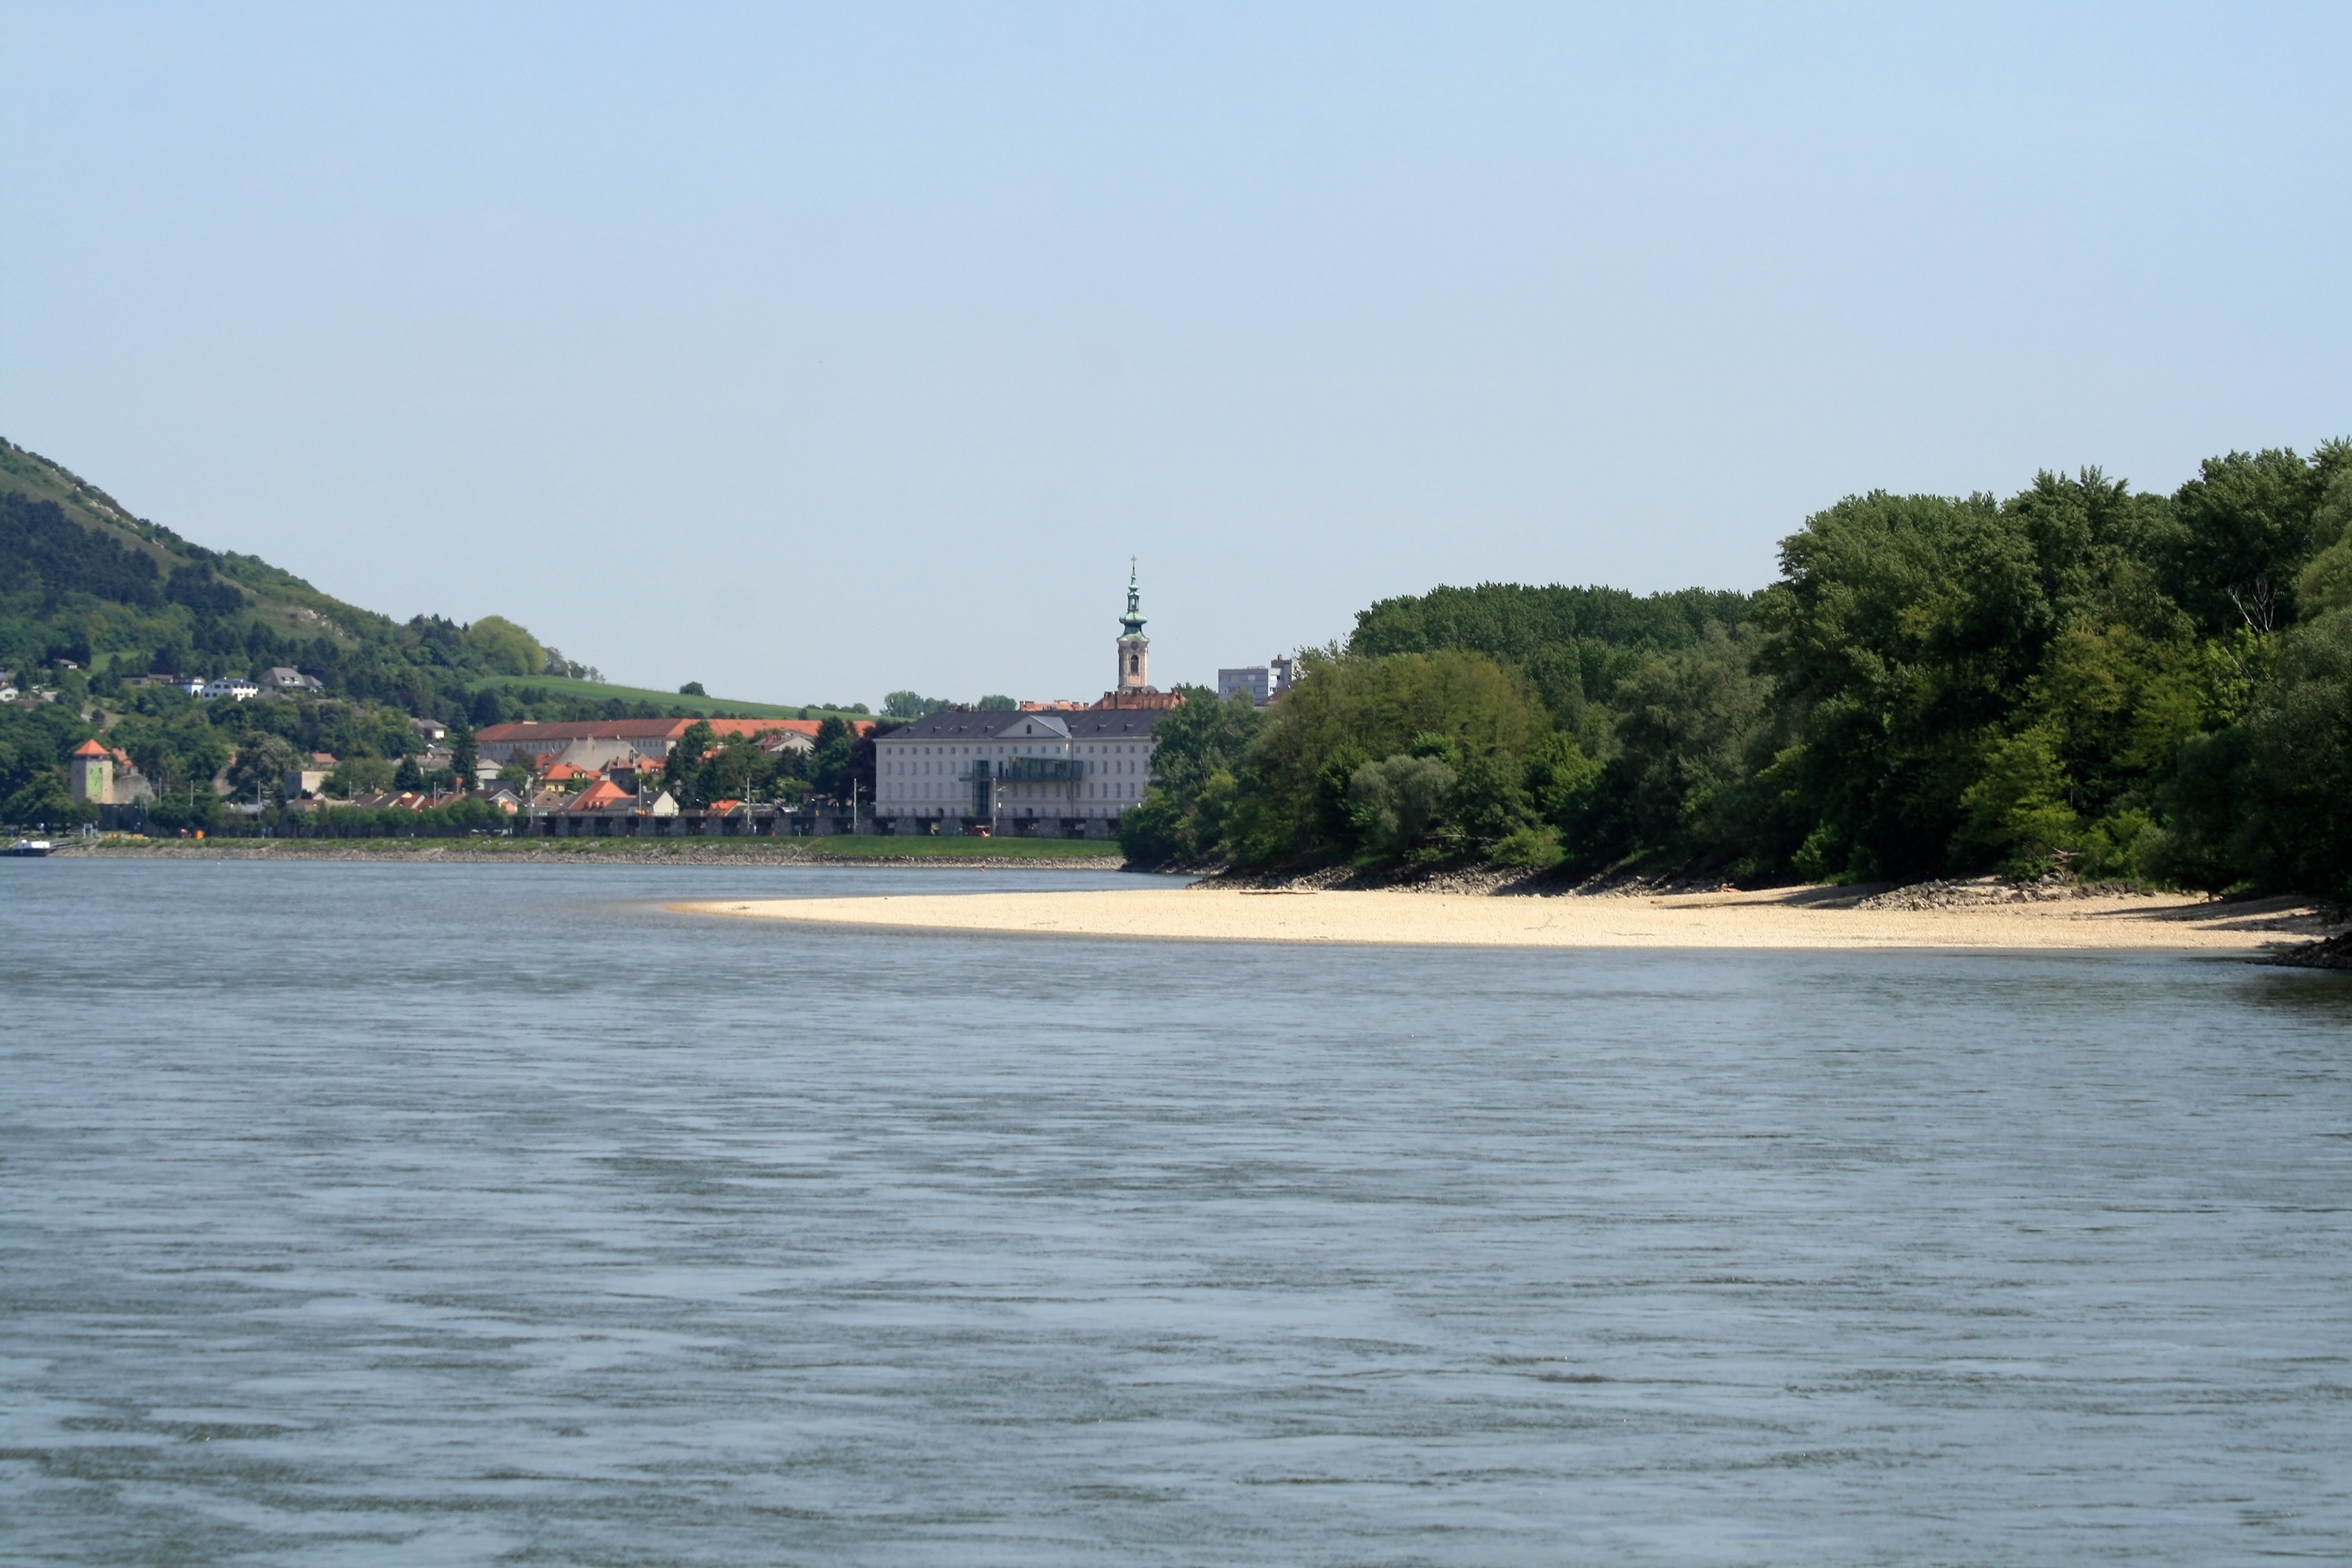 File:Hainburg an der Donau 2011 a.jpg - Wikimedia Commons